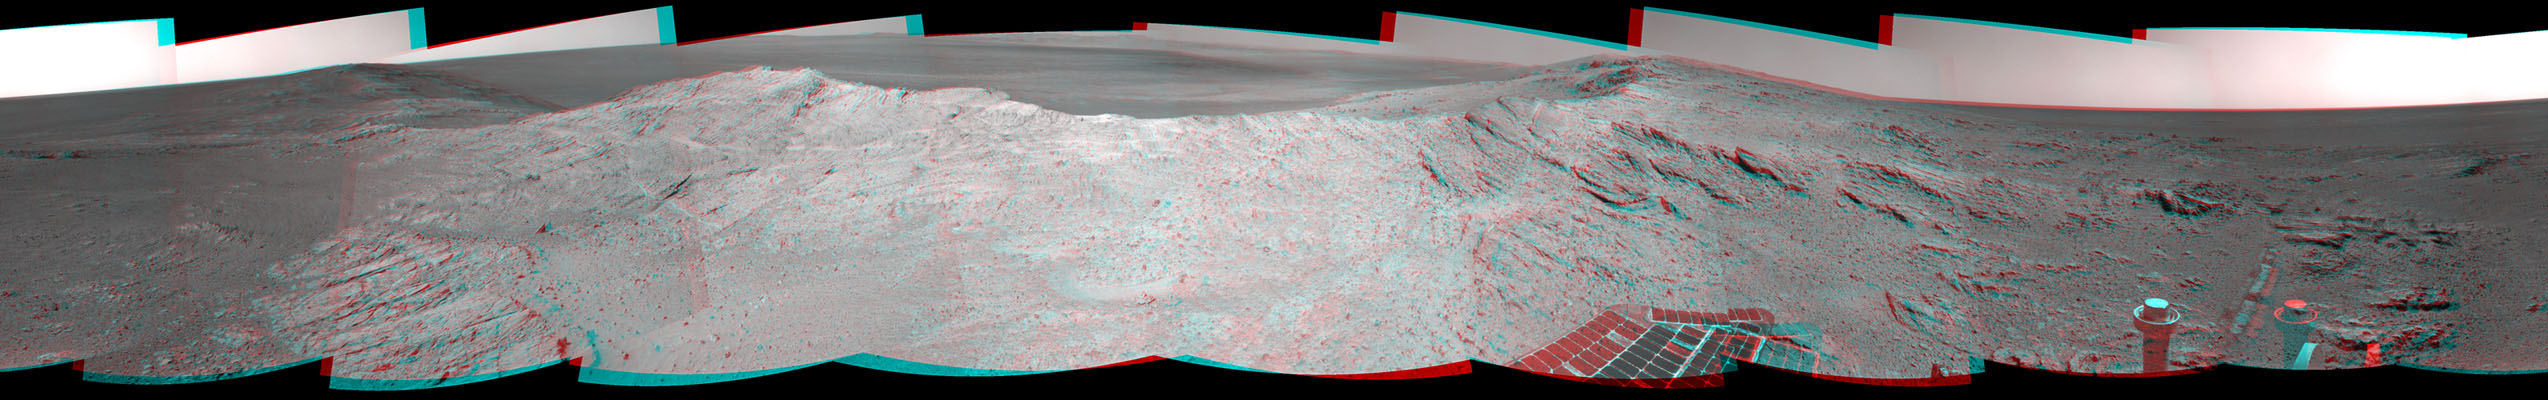 NASA's Mars Exploration Rover captured this stereo, 360-degree view near the ridgeline of Endeavour Crater's western rim. The center is southeastward. You need 3D glasses to view this image.